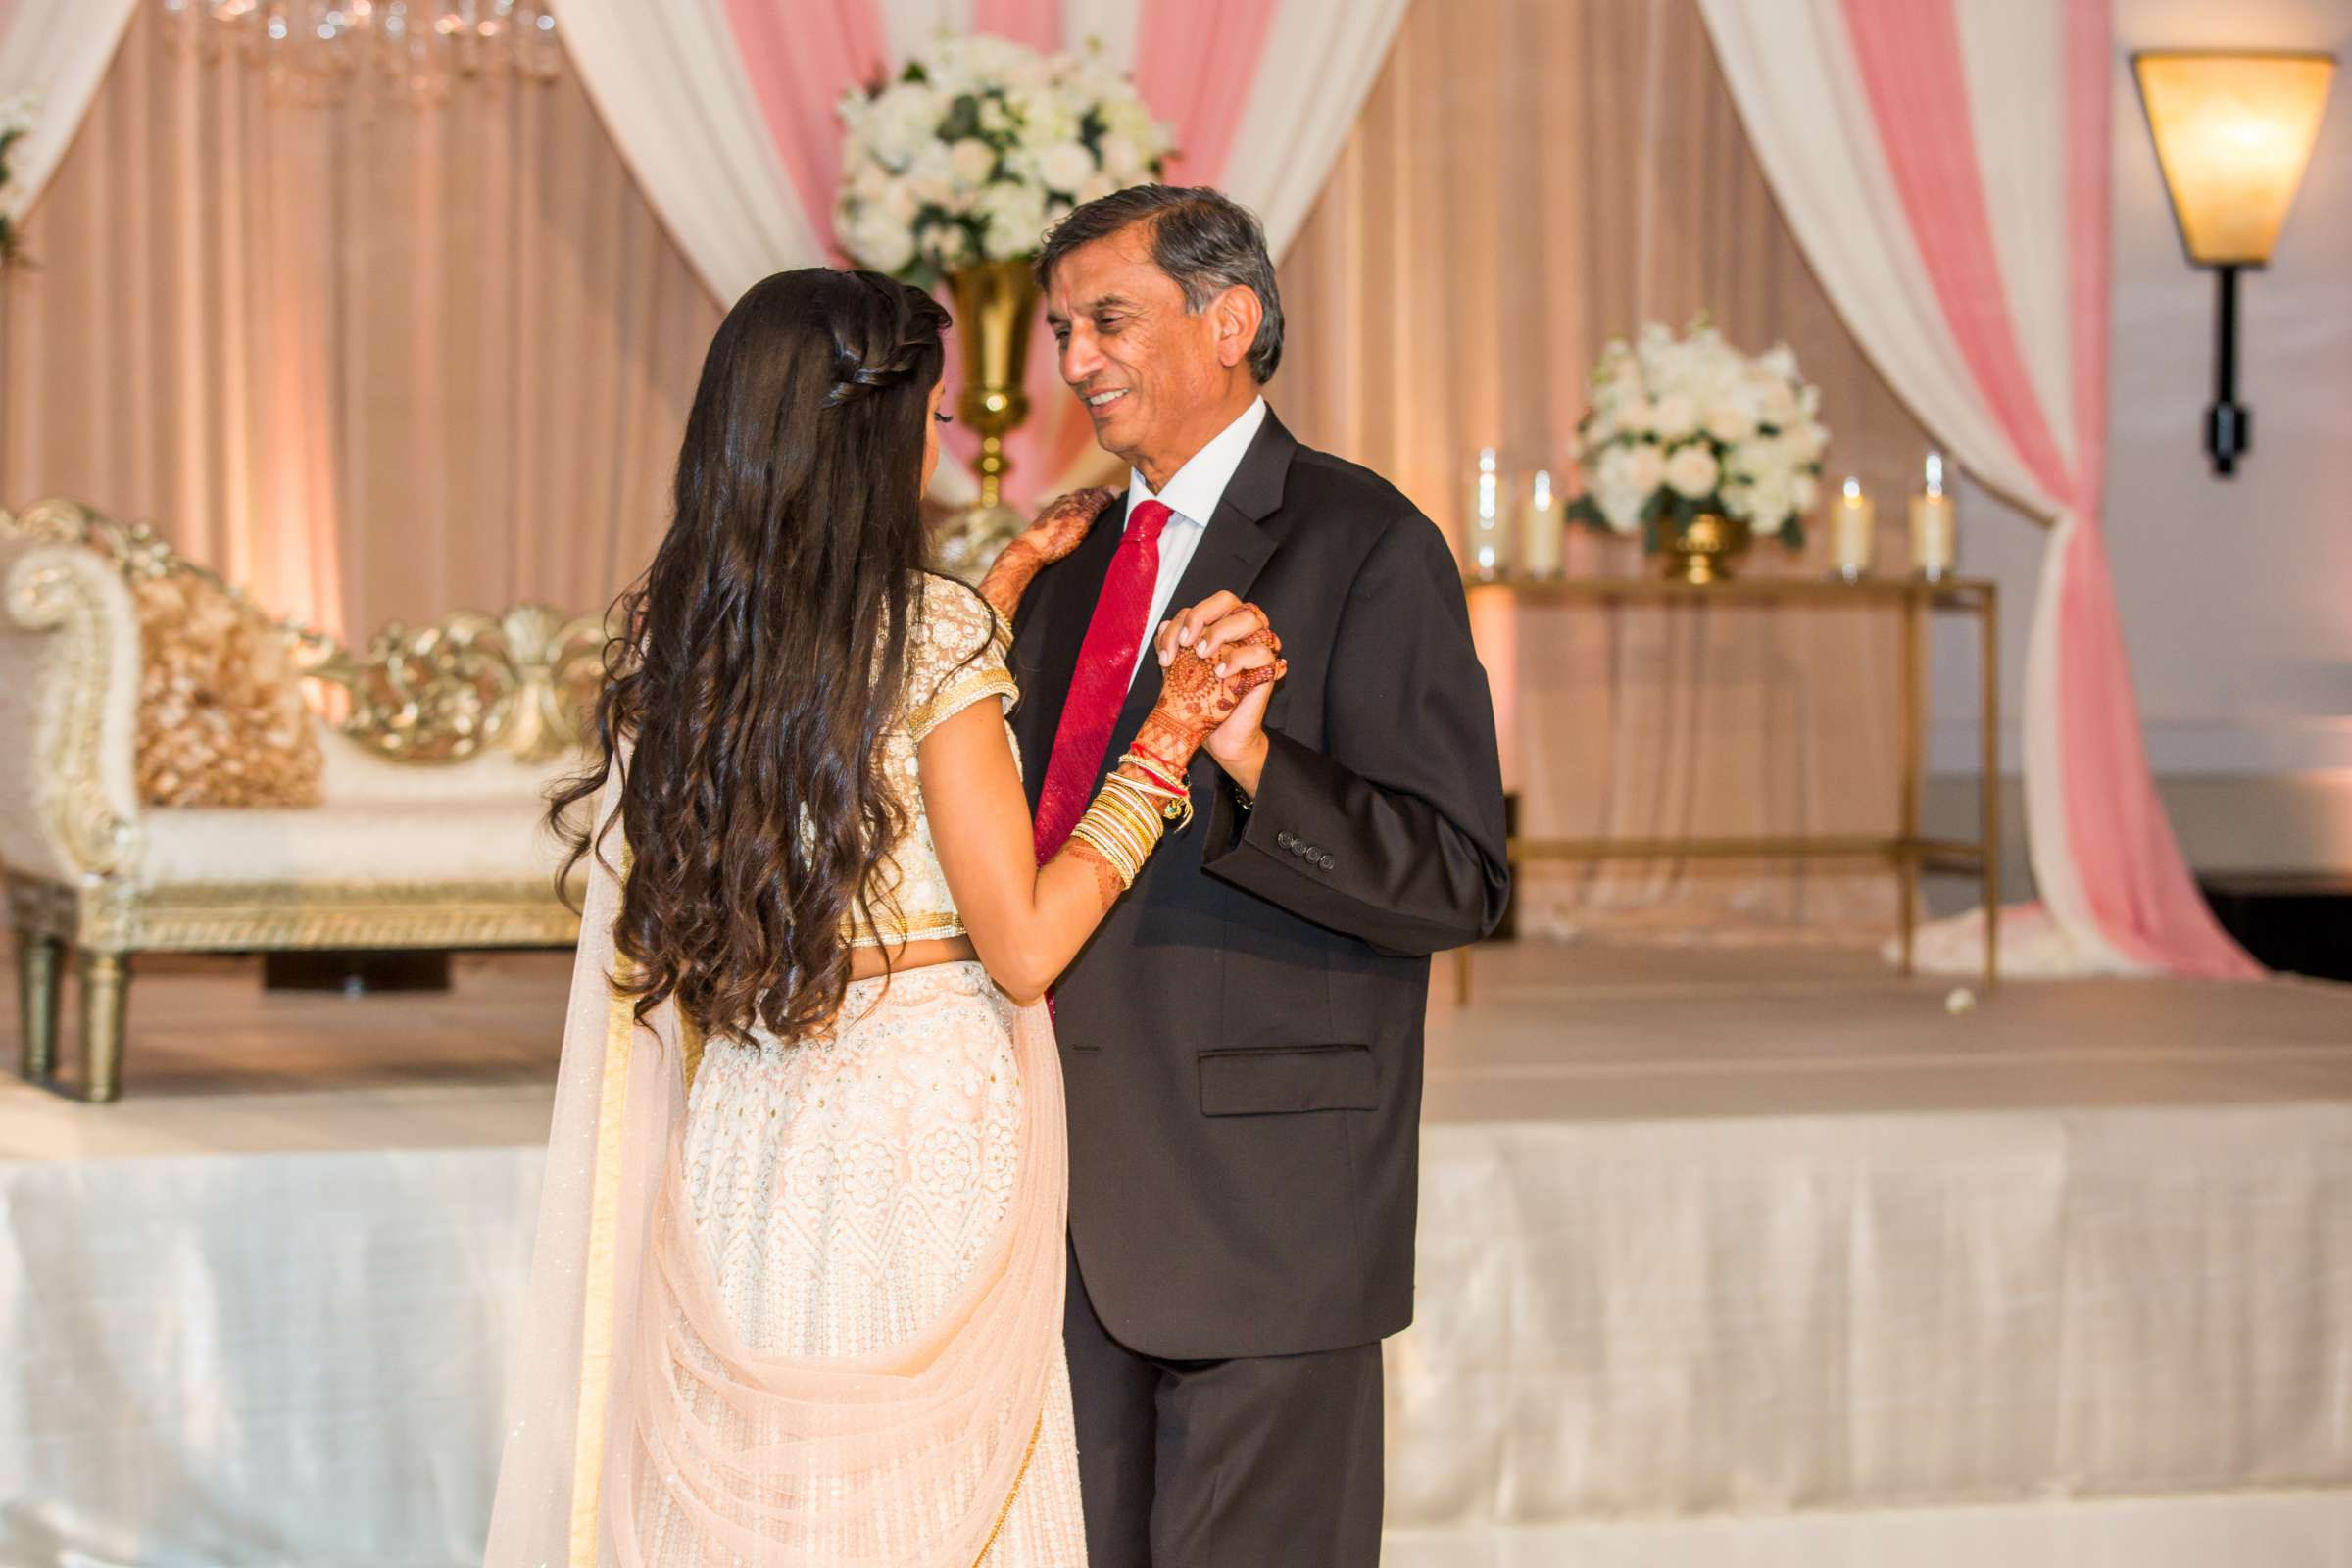 The Westin Carlsbad Resort and Spa Wedding coordinated by Shilpa Patel Events, Ami and Amit Wedding Photo #230 by True Photography